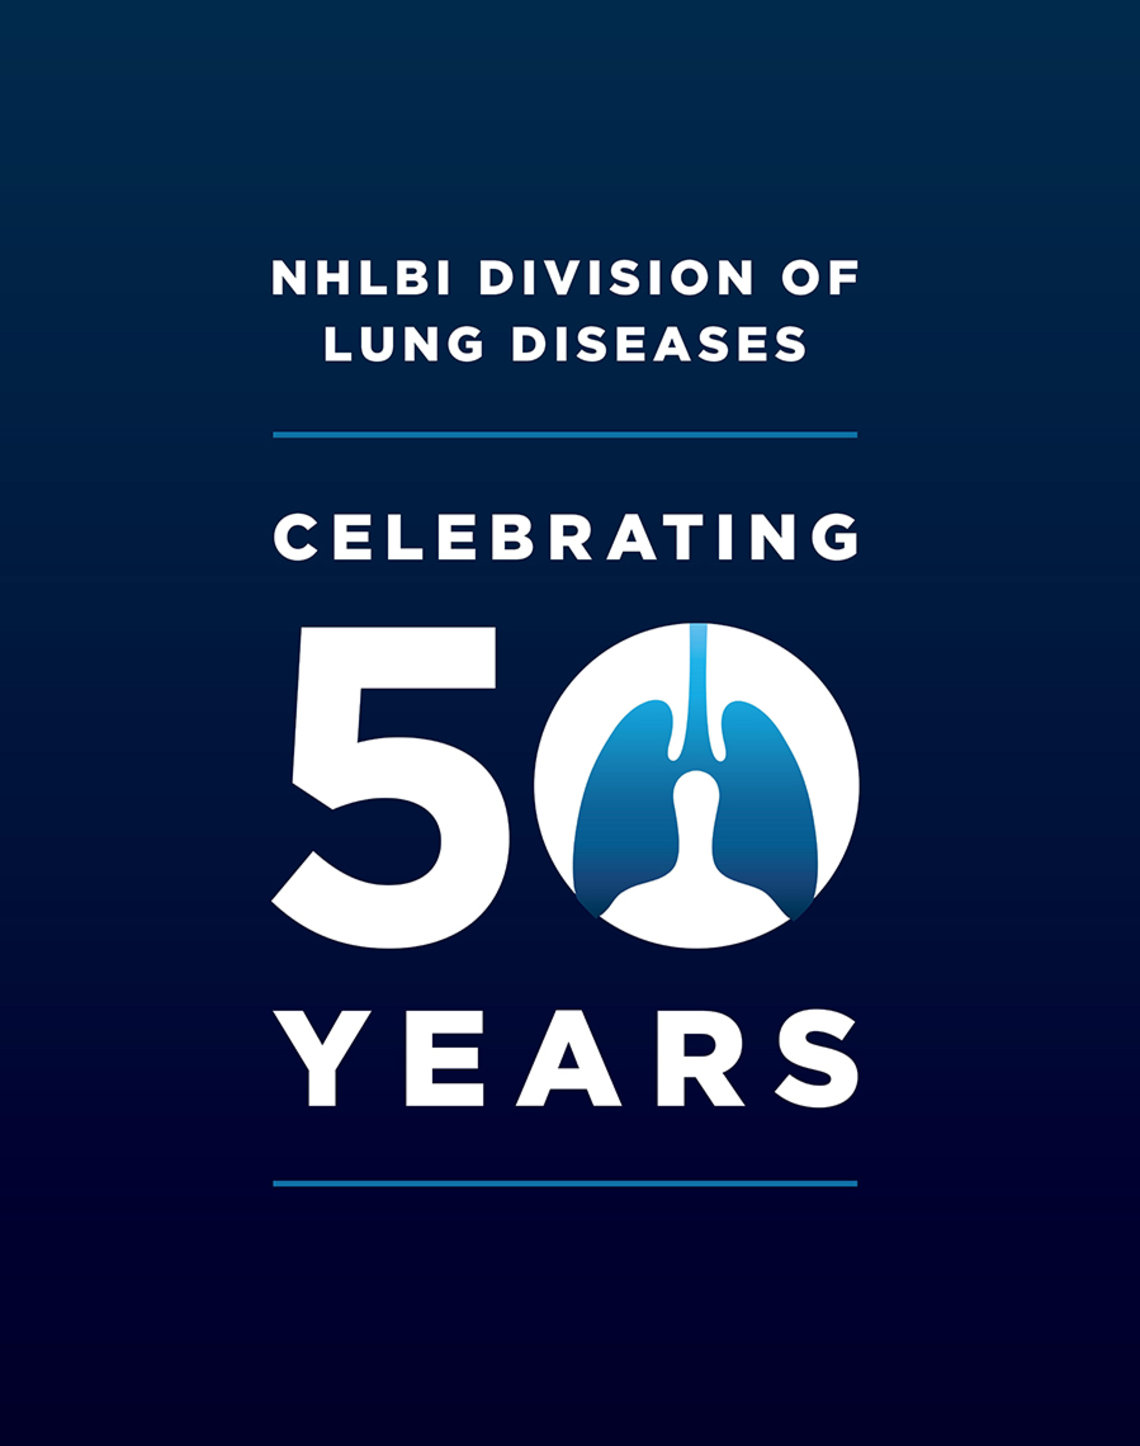 The NHLBI's Division of Lung Diseases celebrates 50 years logo